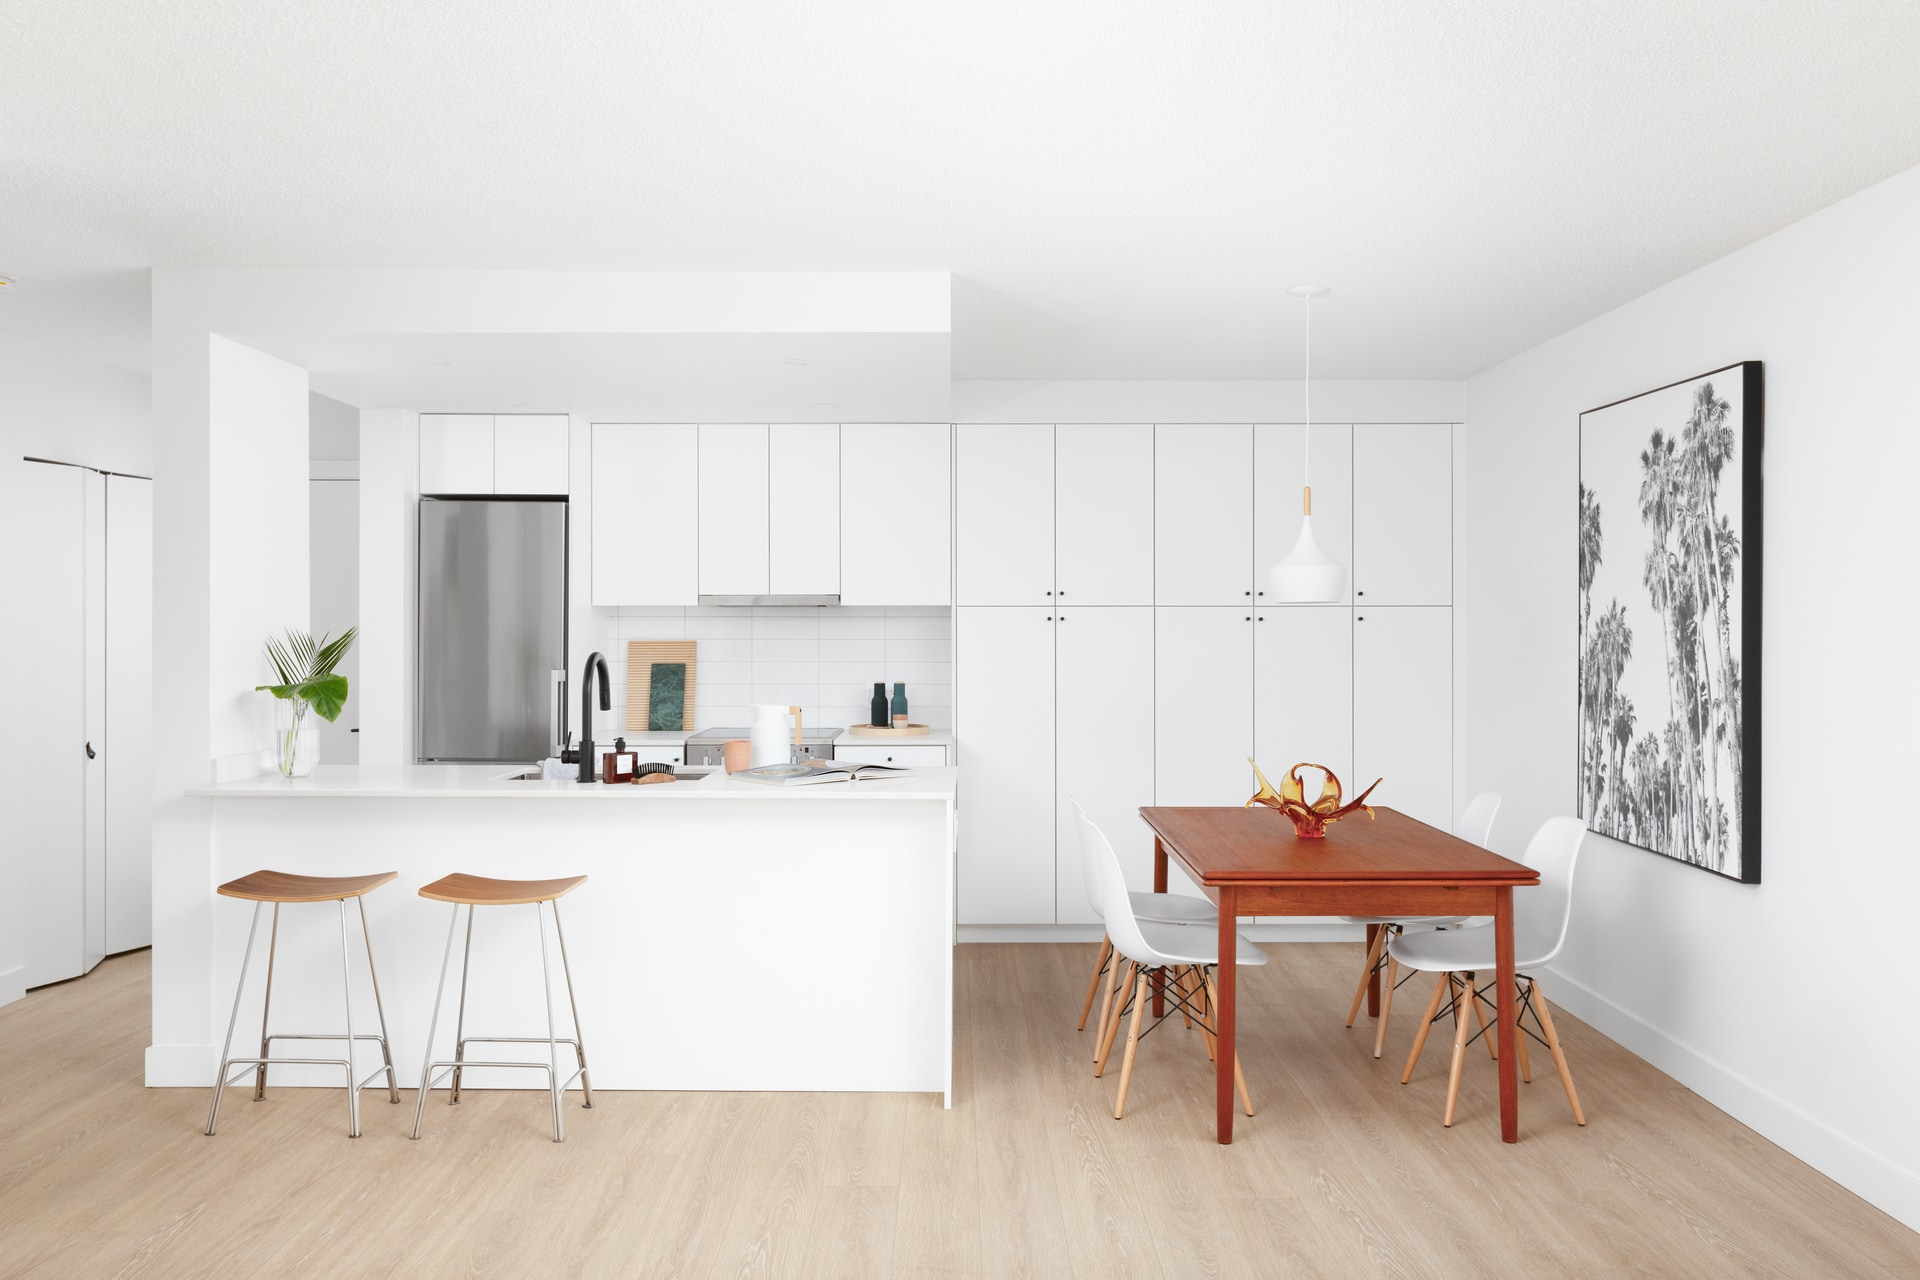 (GusApartments.com) Like-New Near Trout Lake! Dream Kitchen + Roomy Living Space!